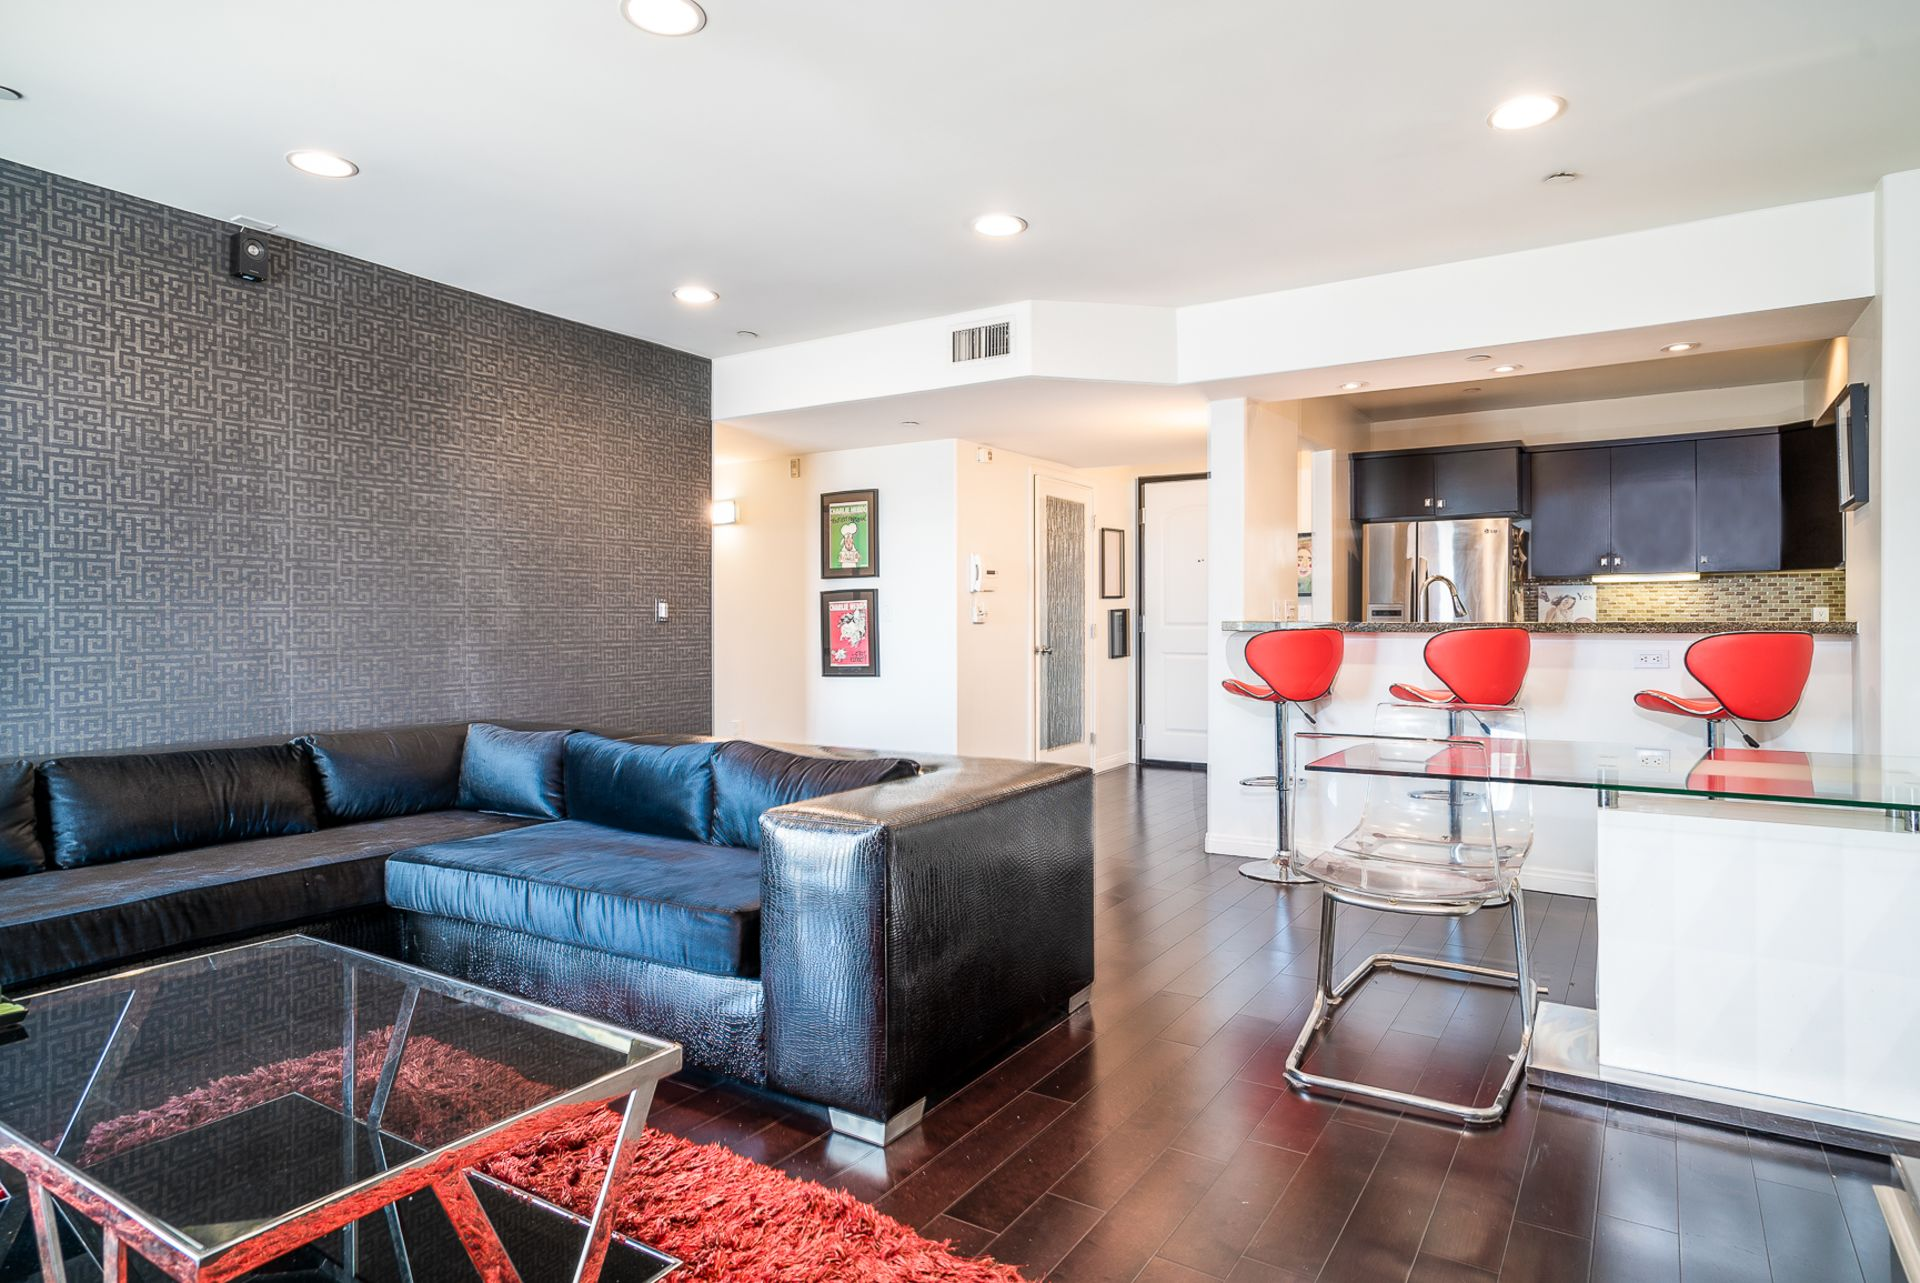 JUST LISTED: Updated 2 Bed 2 Bath Condo in Mid-Wilshire